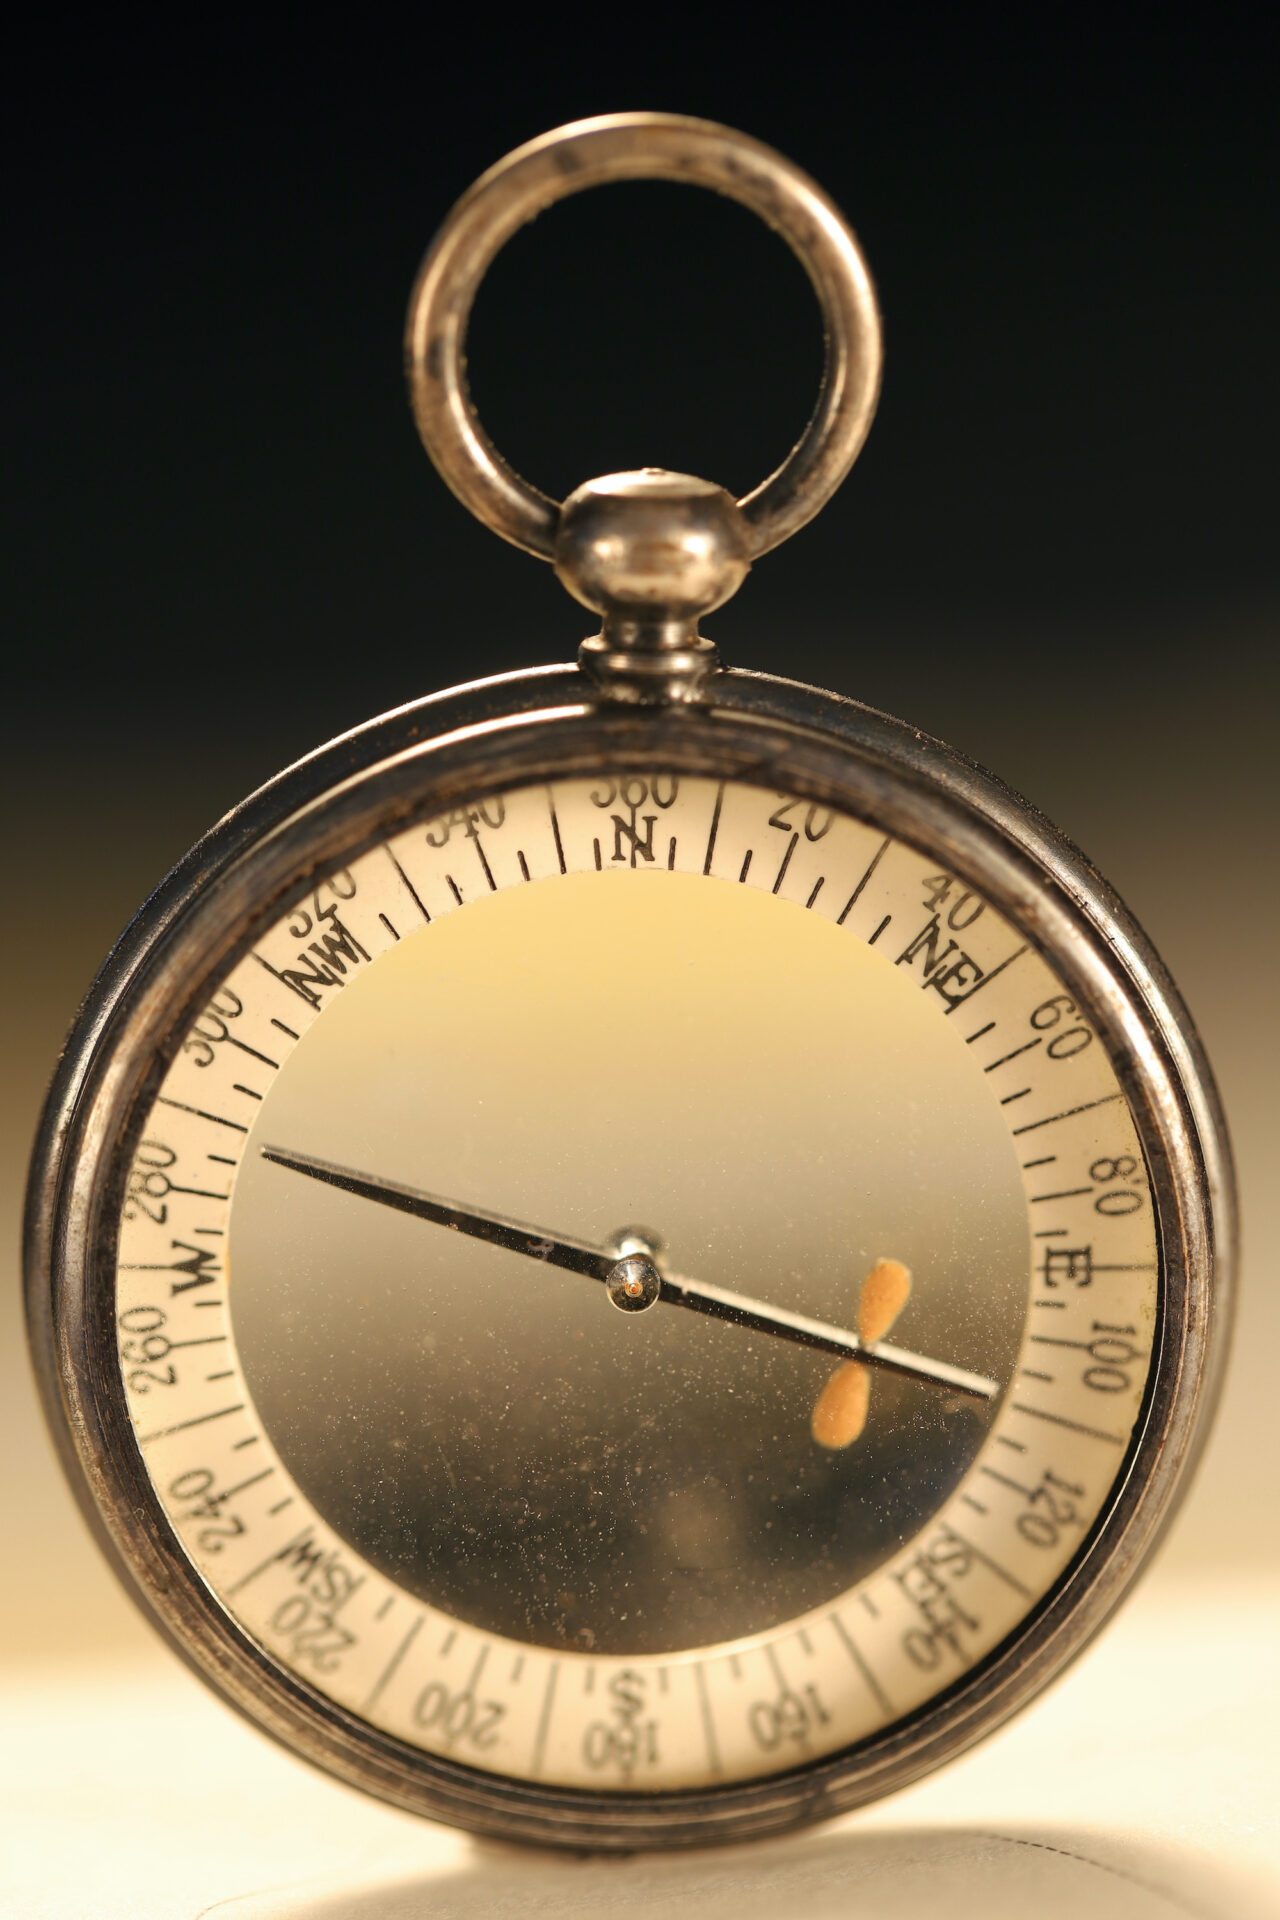 Image of Barker Radiant Transparent Pebble Lens Compass c1910 showing cardinals, intercardinals and degrees